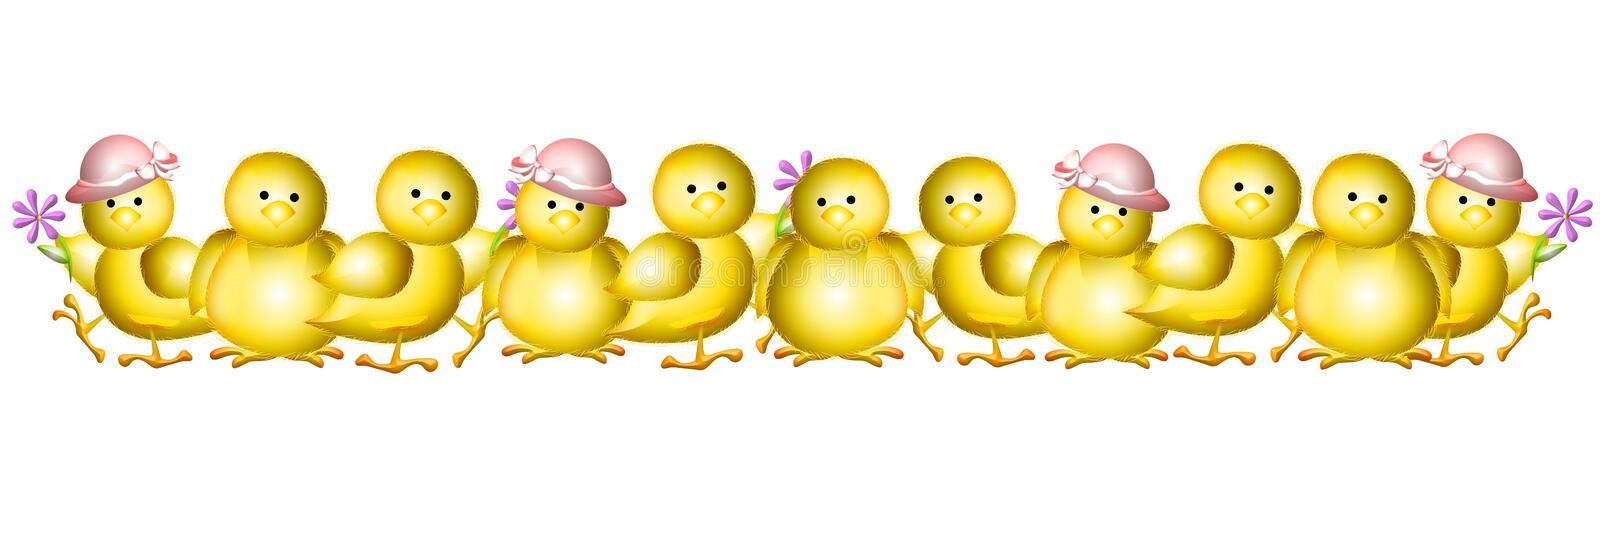 Row of Yellow Baby Easter Chicks Border. An illustration featuring a row of adorable little baby yellow chicks wearing hats and holding flowers for use as royalty free illustration